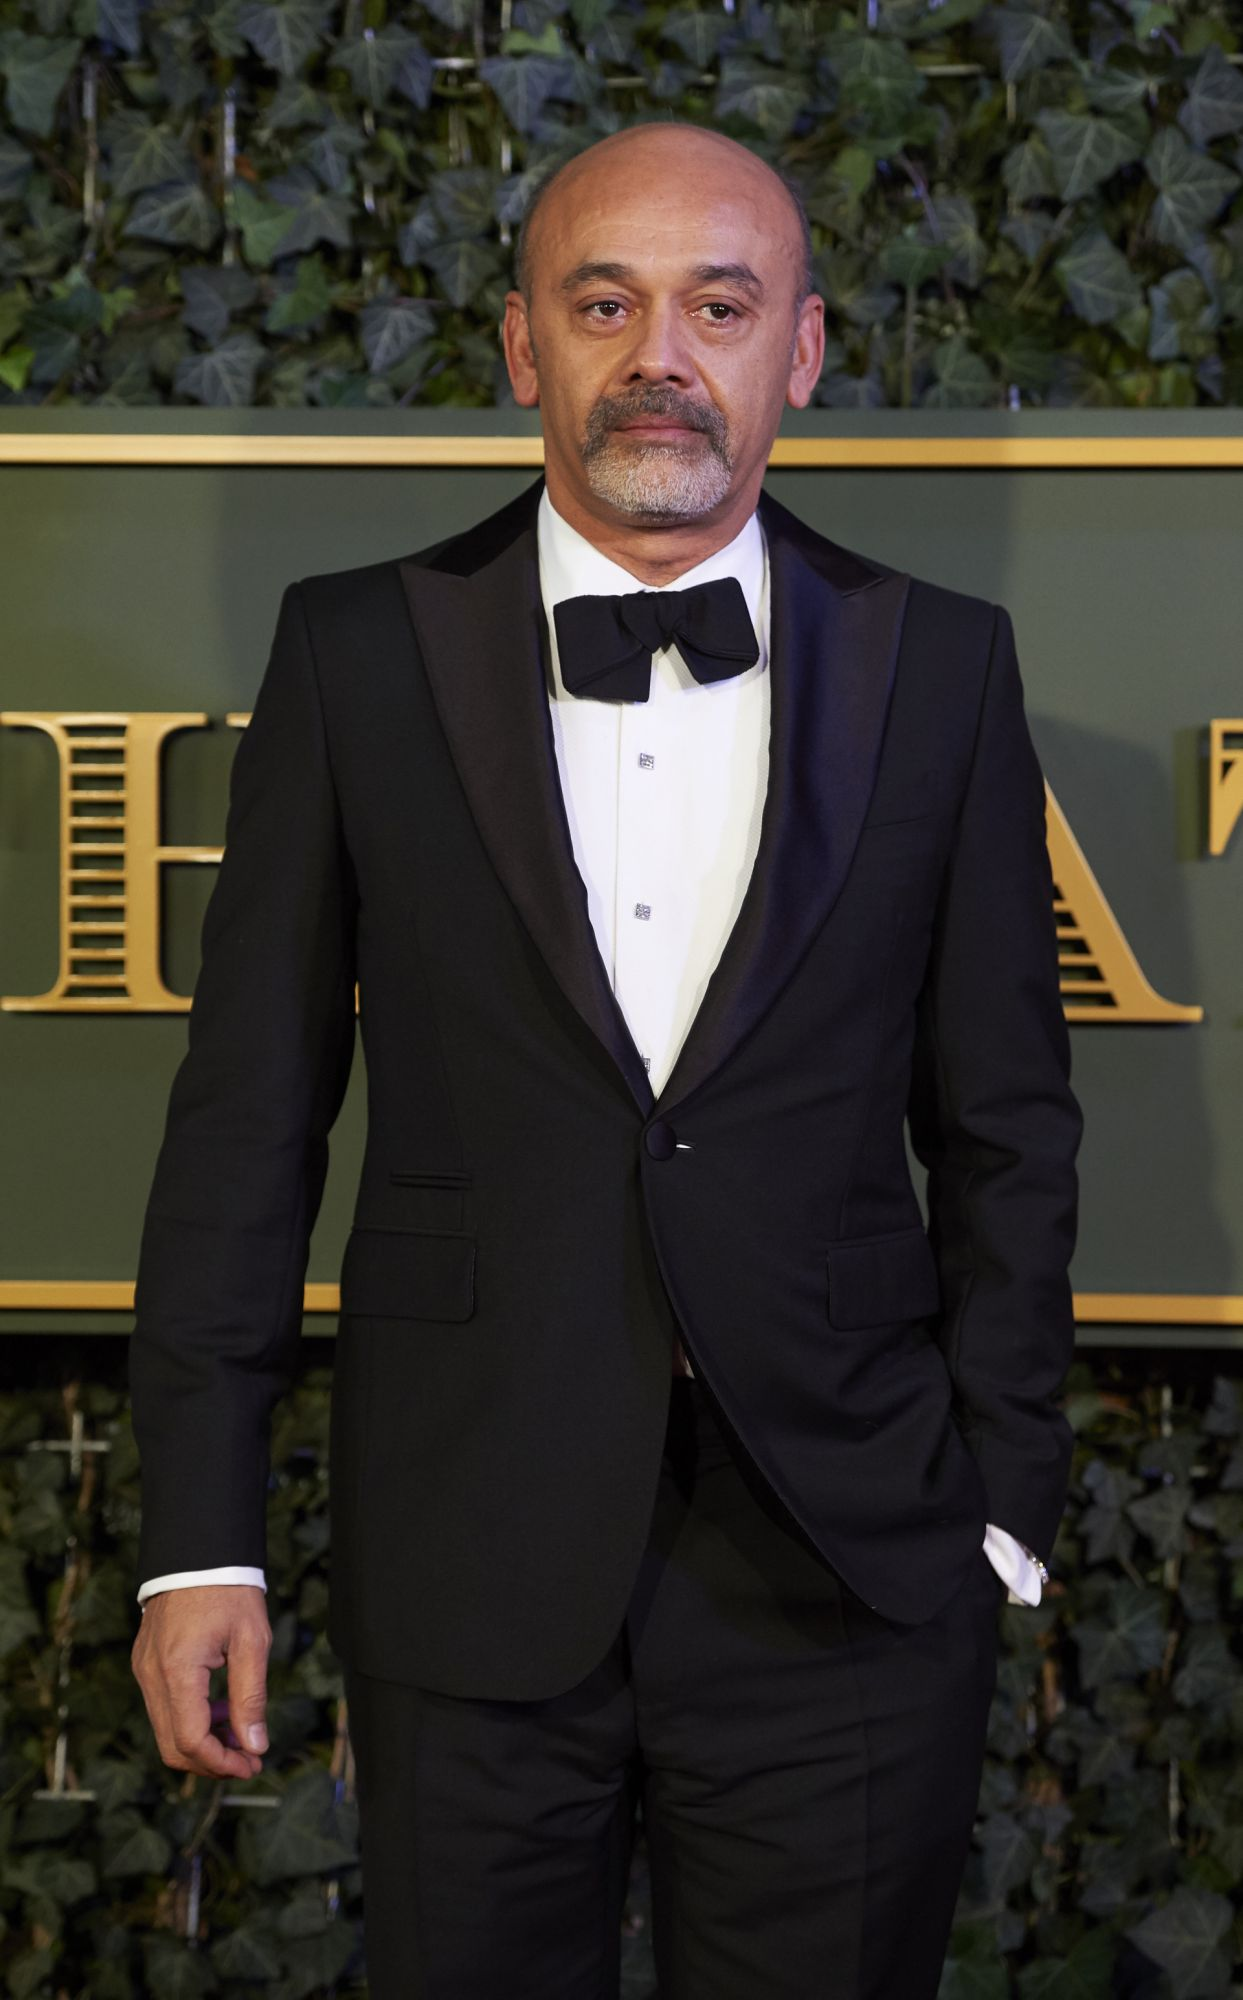 French luxury footwear and fashion designer Christian Louboutin poses on the red carpet as he attends the 61st London Evening Standard Theatre Awards 2015 in London on November 22, 2015. AFP PHOTO / NIKLAS HALLE'N / AFP PHOTO / NIKLAS HALLE'N